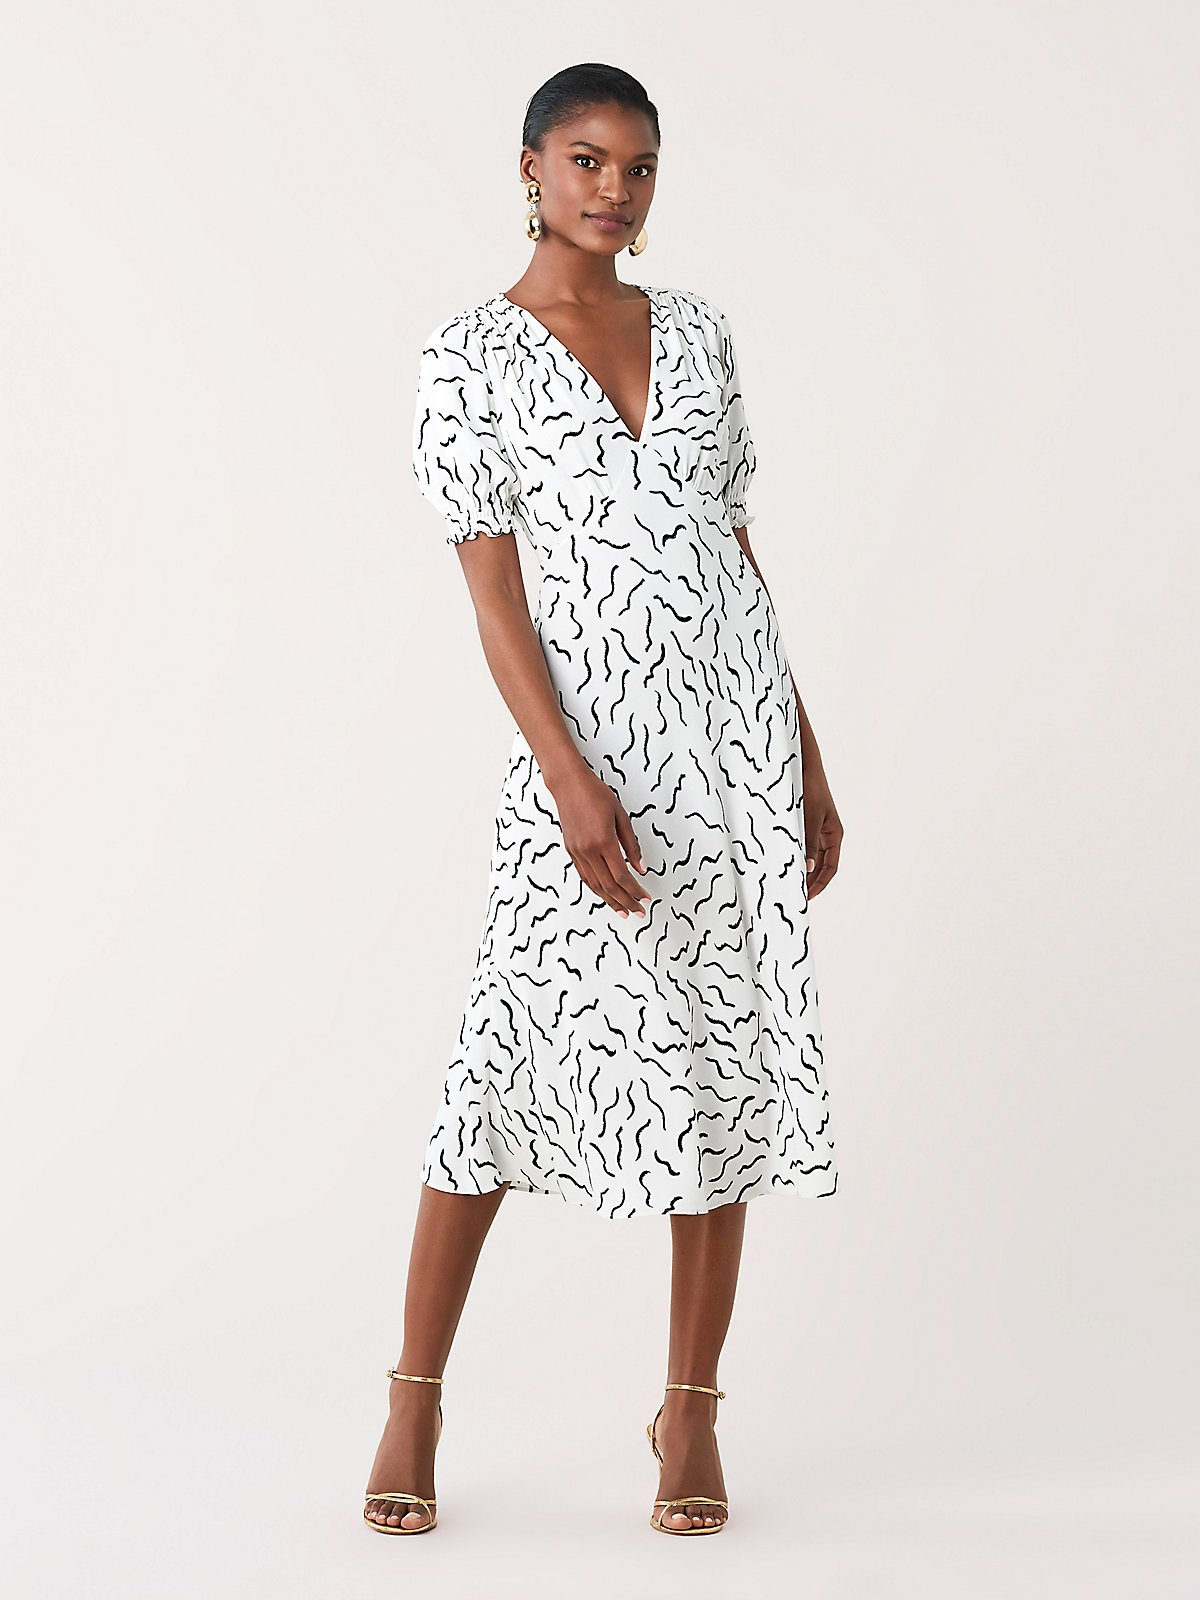 model wearing a black and white patterned midi-length dress